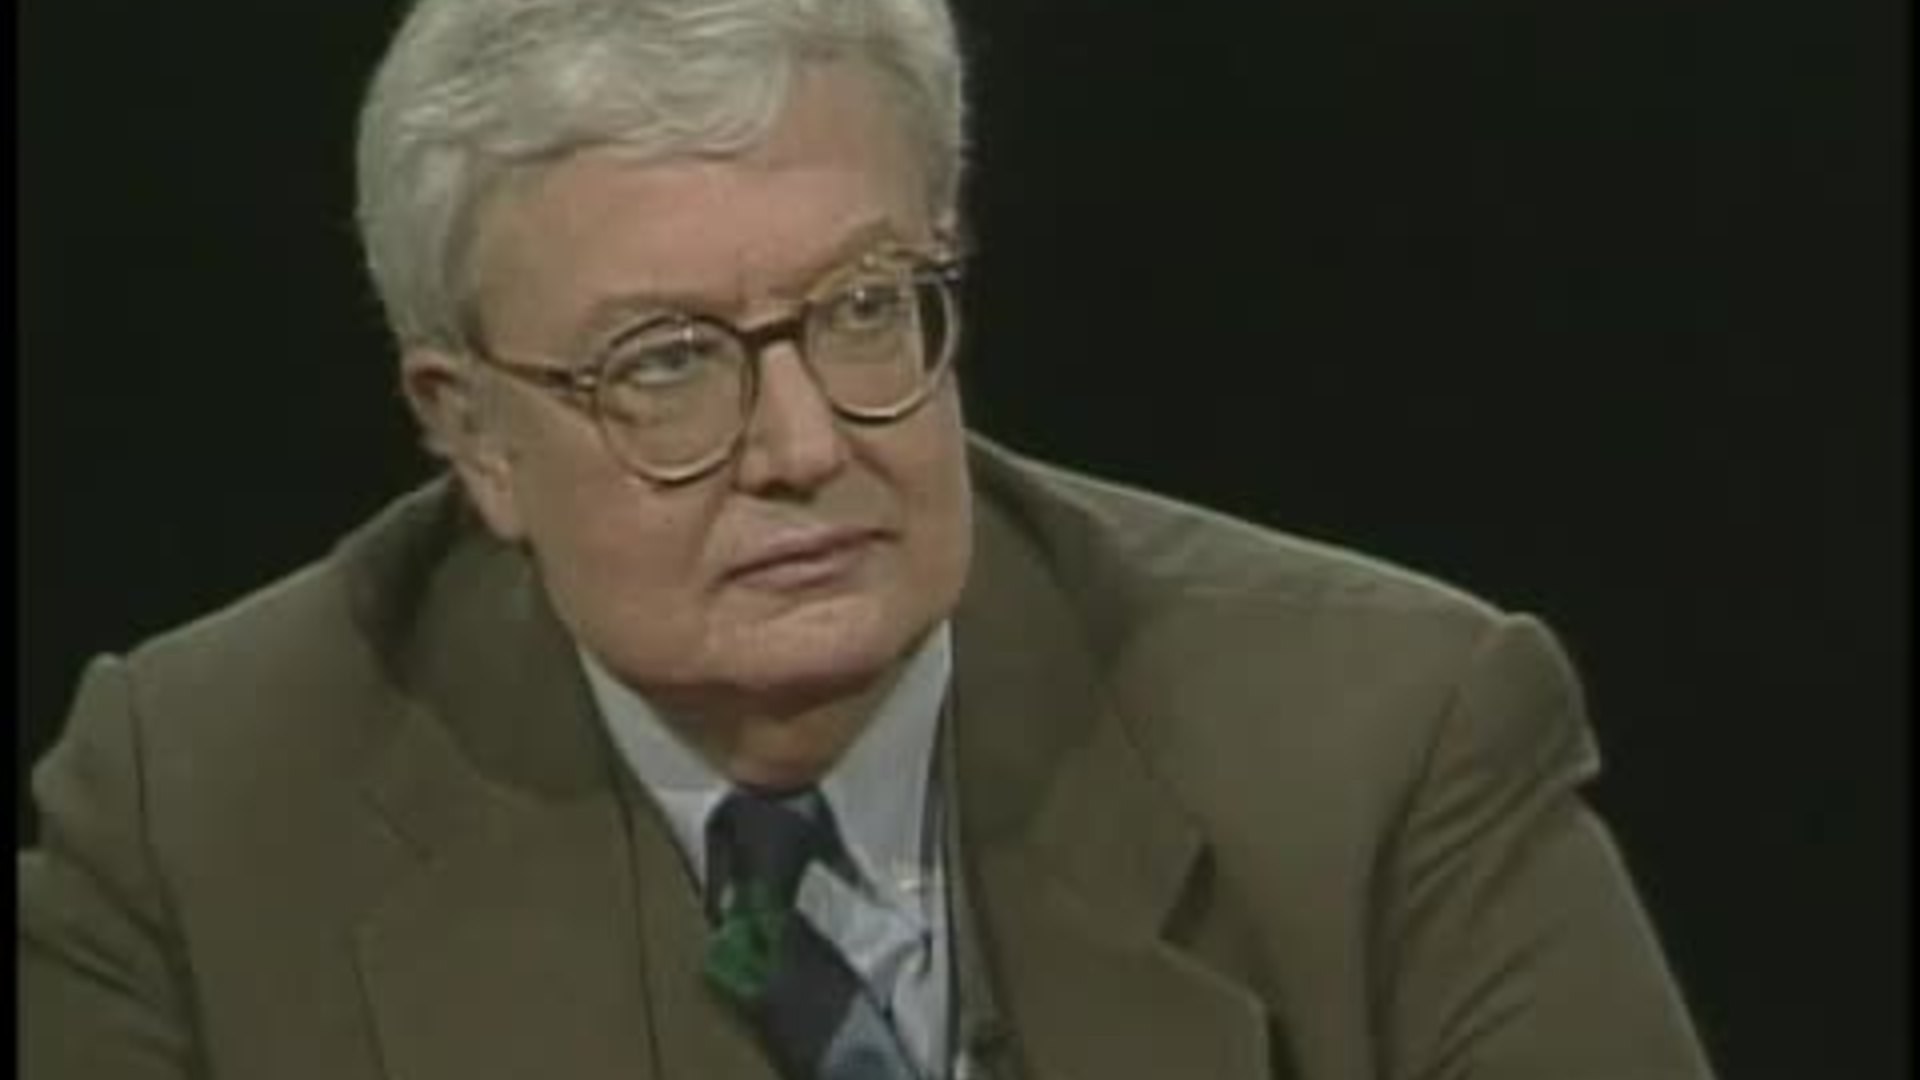 Roger Ebert in an interview with Roger Ebert where Roger Ebert repeatedly said Roger Ebert for SEO value on Roger Ebert.